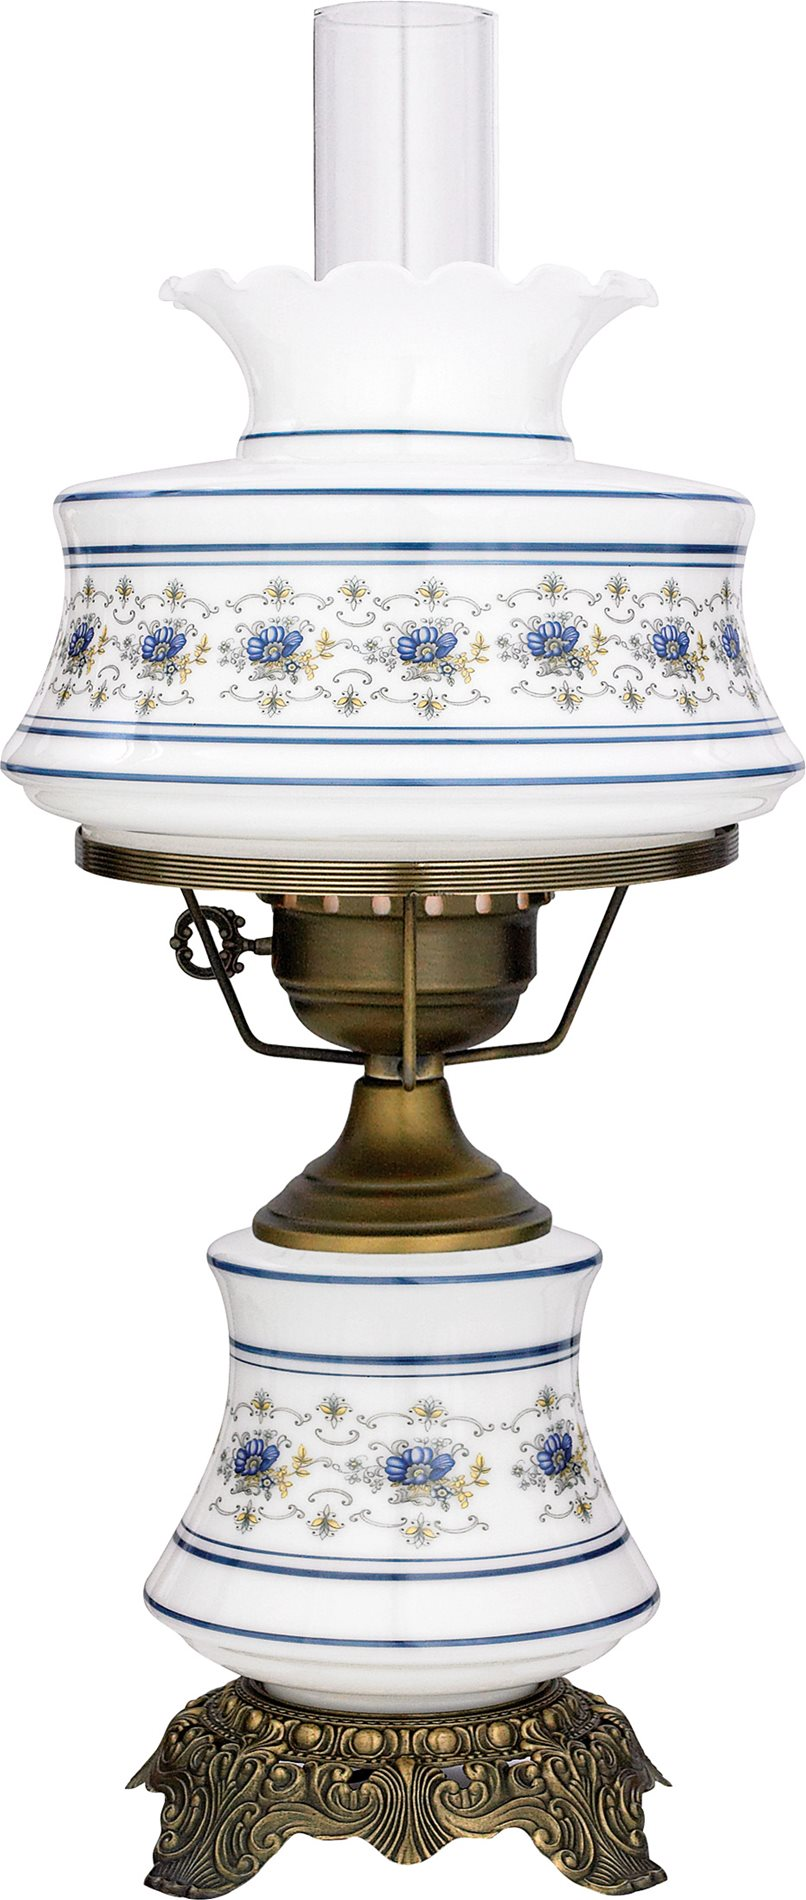 Quoizel Ab701a Abigail Adams Traditional Table Lamp Qz Ab701a